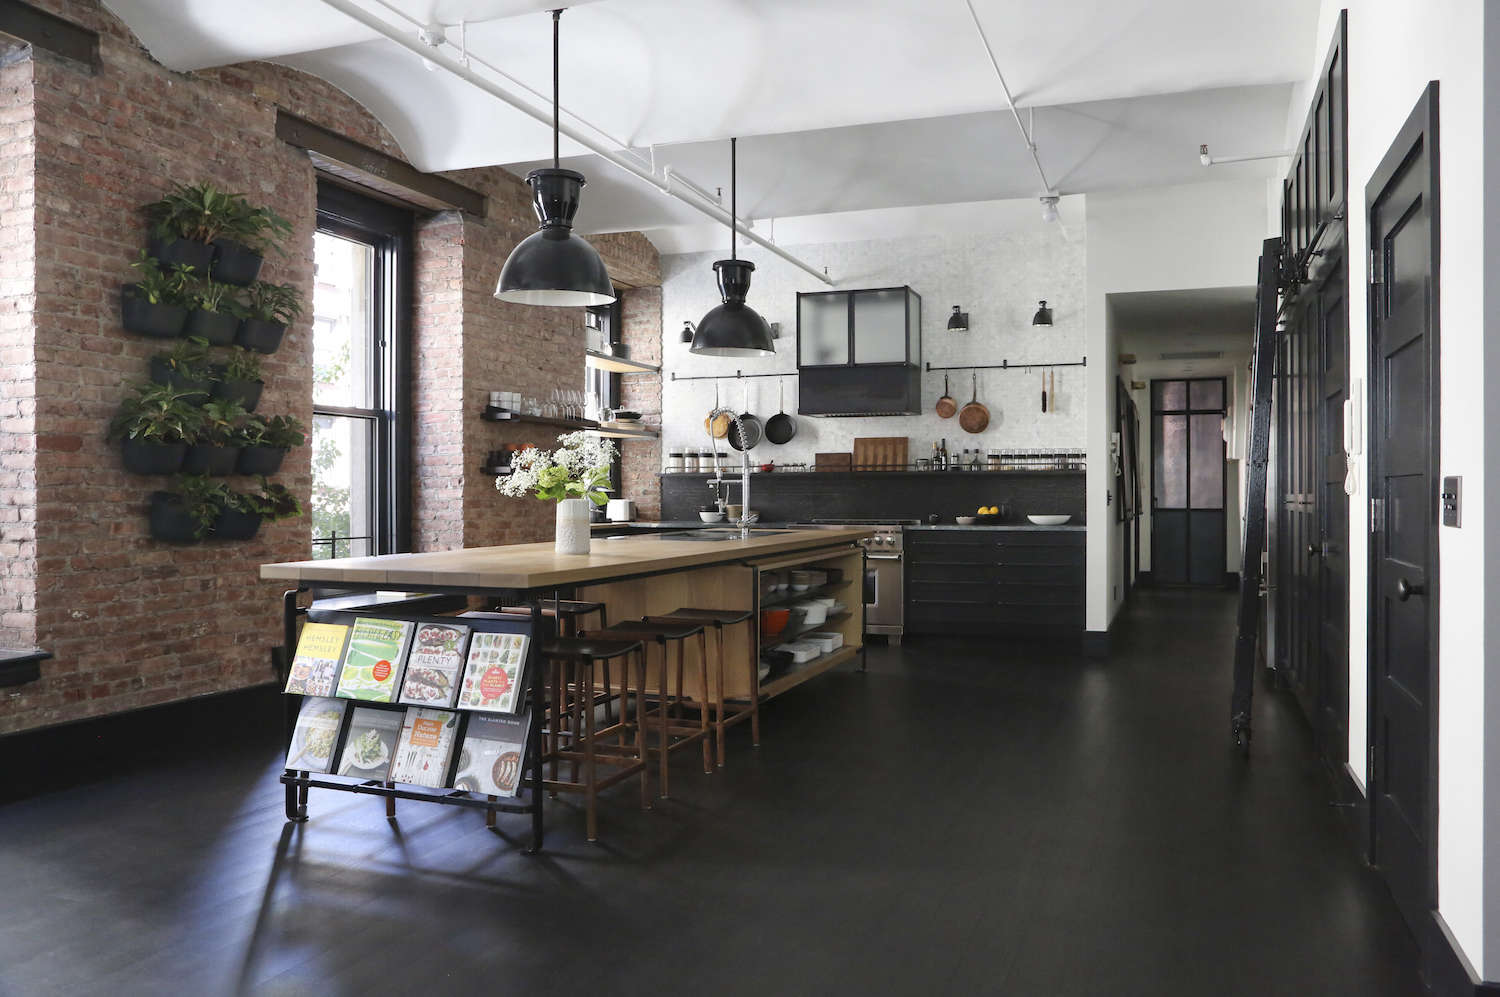 A rugged rustic nyc loft by matt bear of union studio for Kitchen remodeling nyc